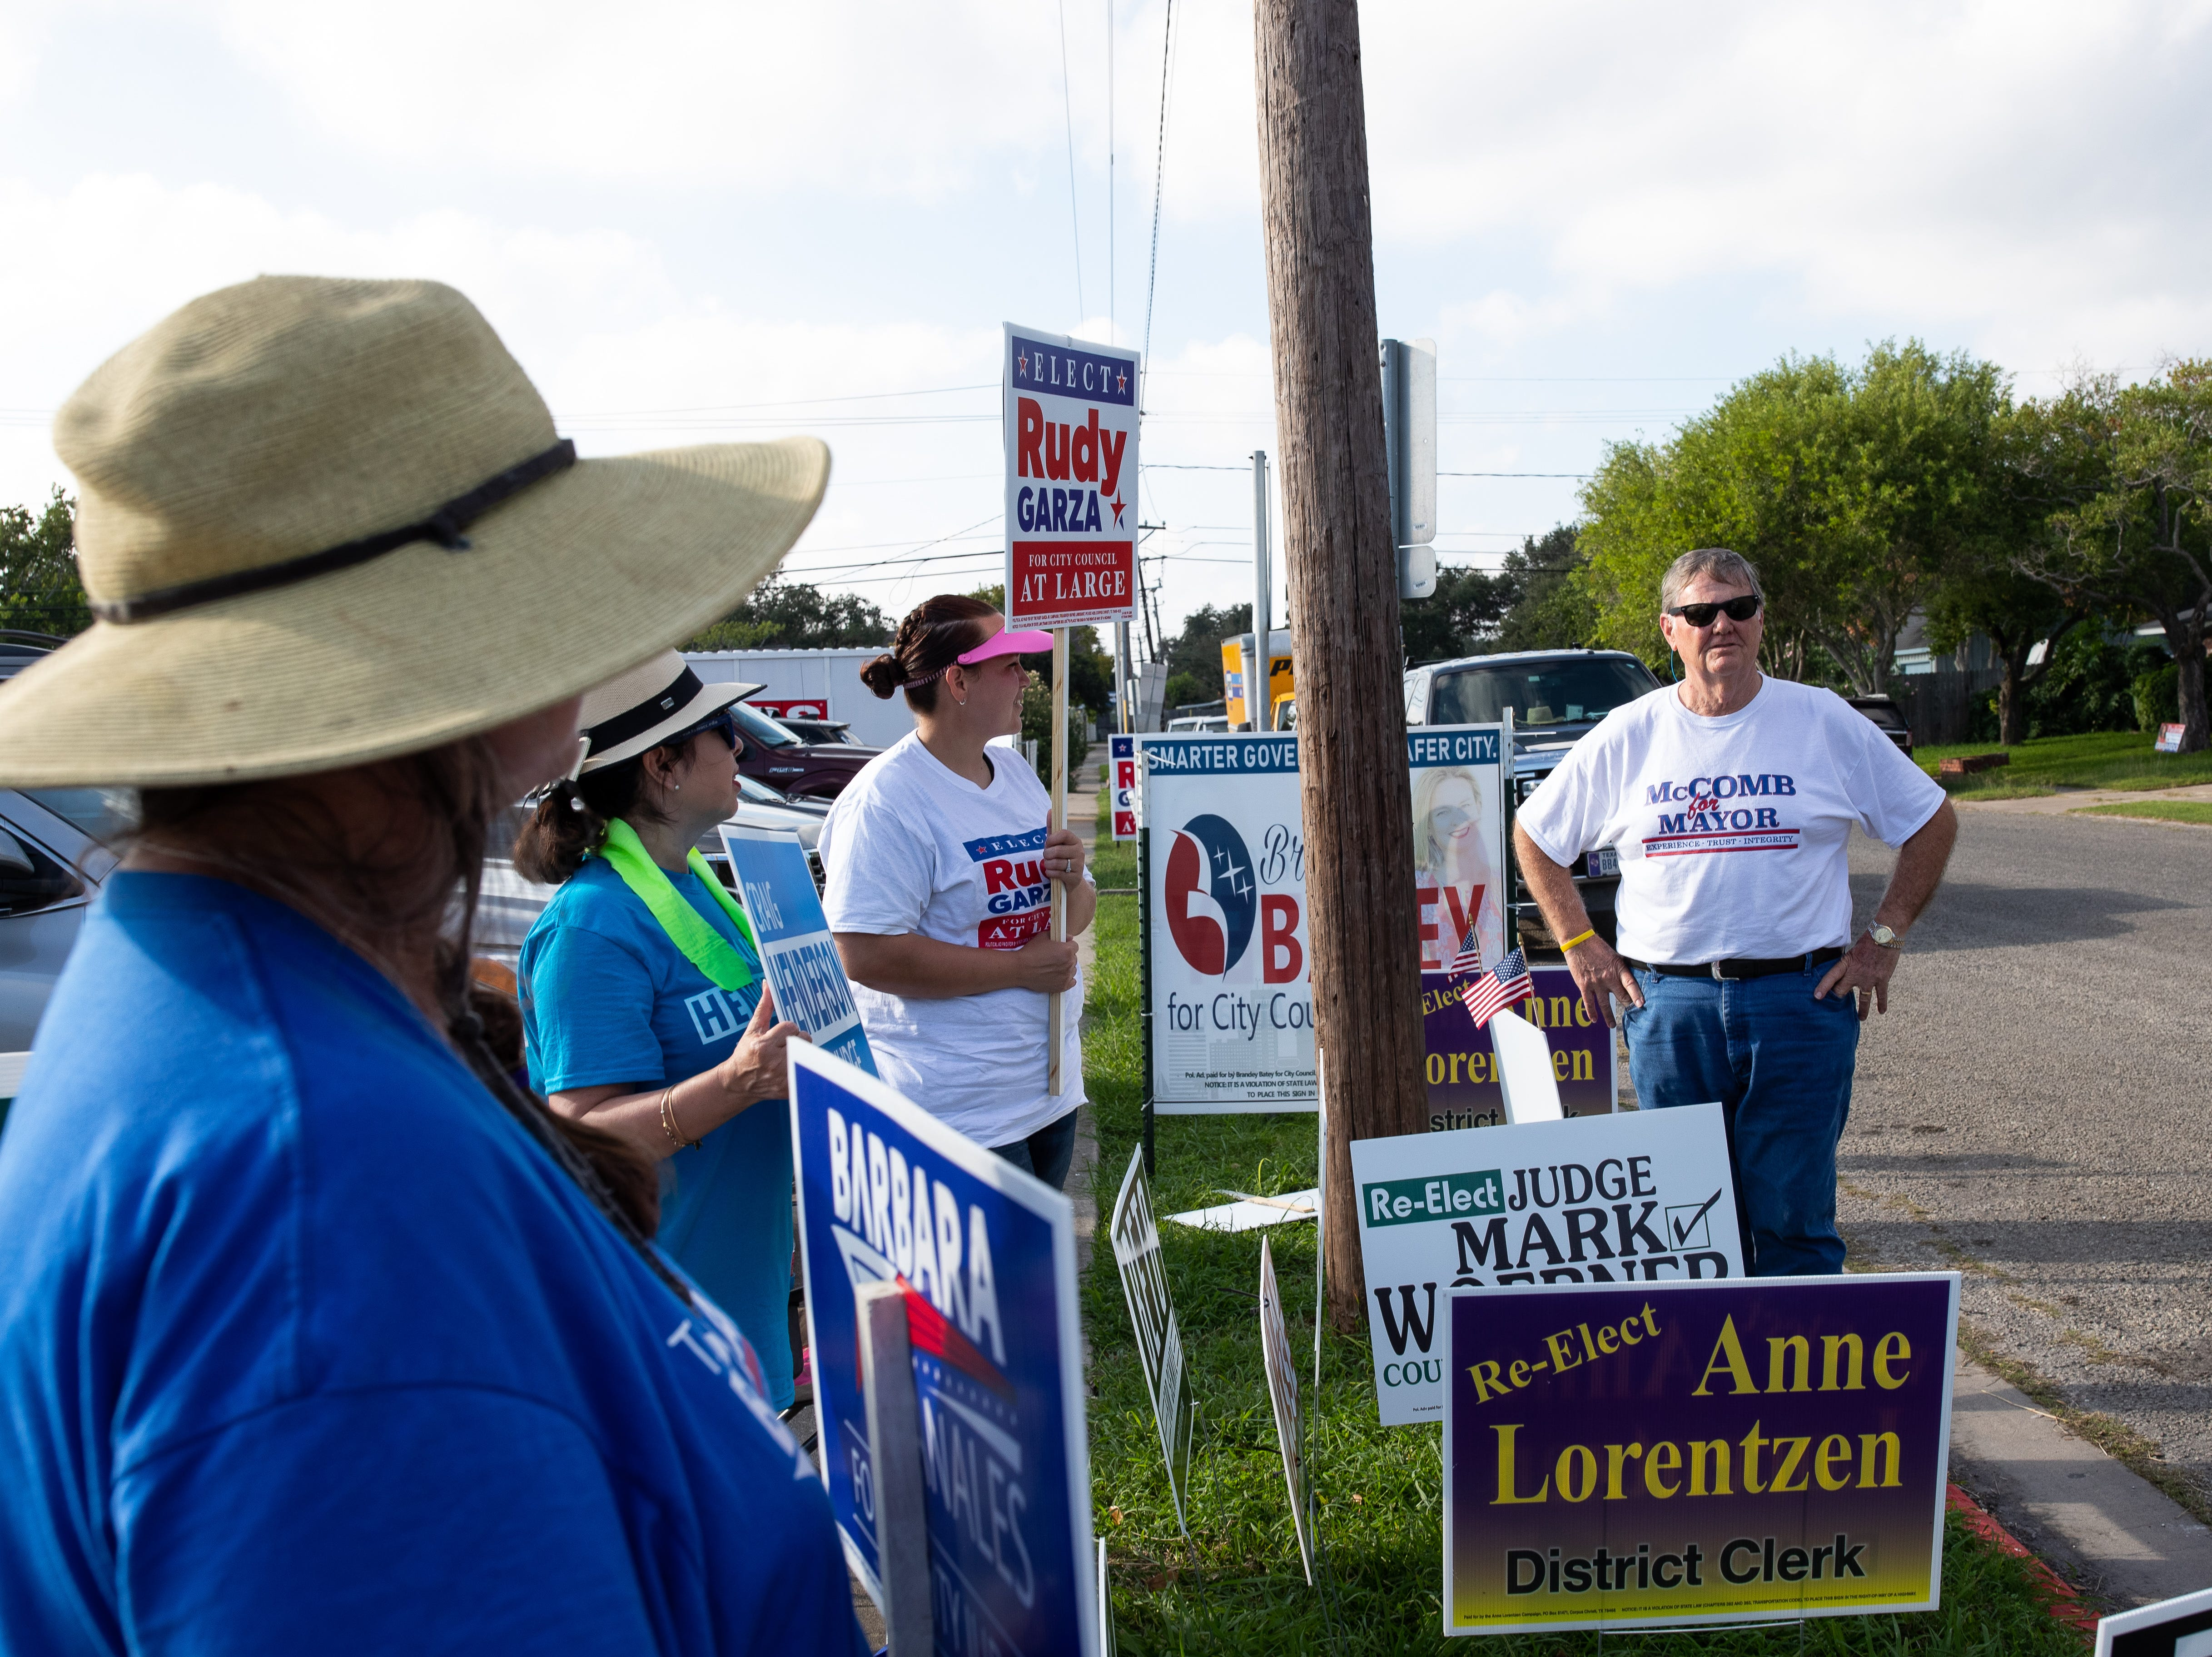 Corpus Christi Mayor Joe McComb  (far right) makes a campaign stop outside the Montclair Elementary School polling location during Election Day on Tuesday, Nov. 6, 2018.